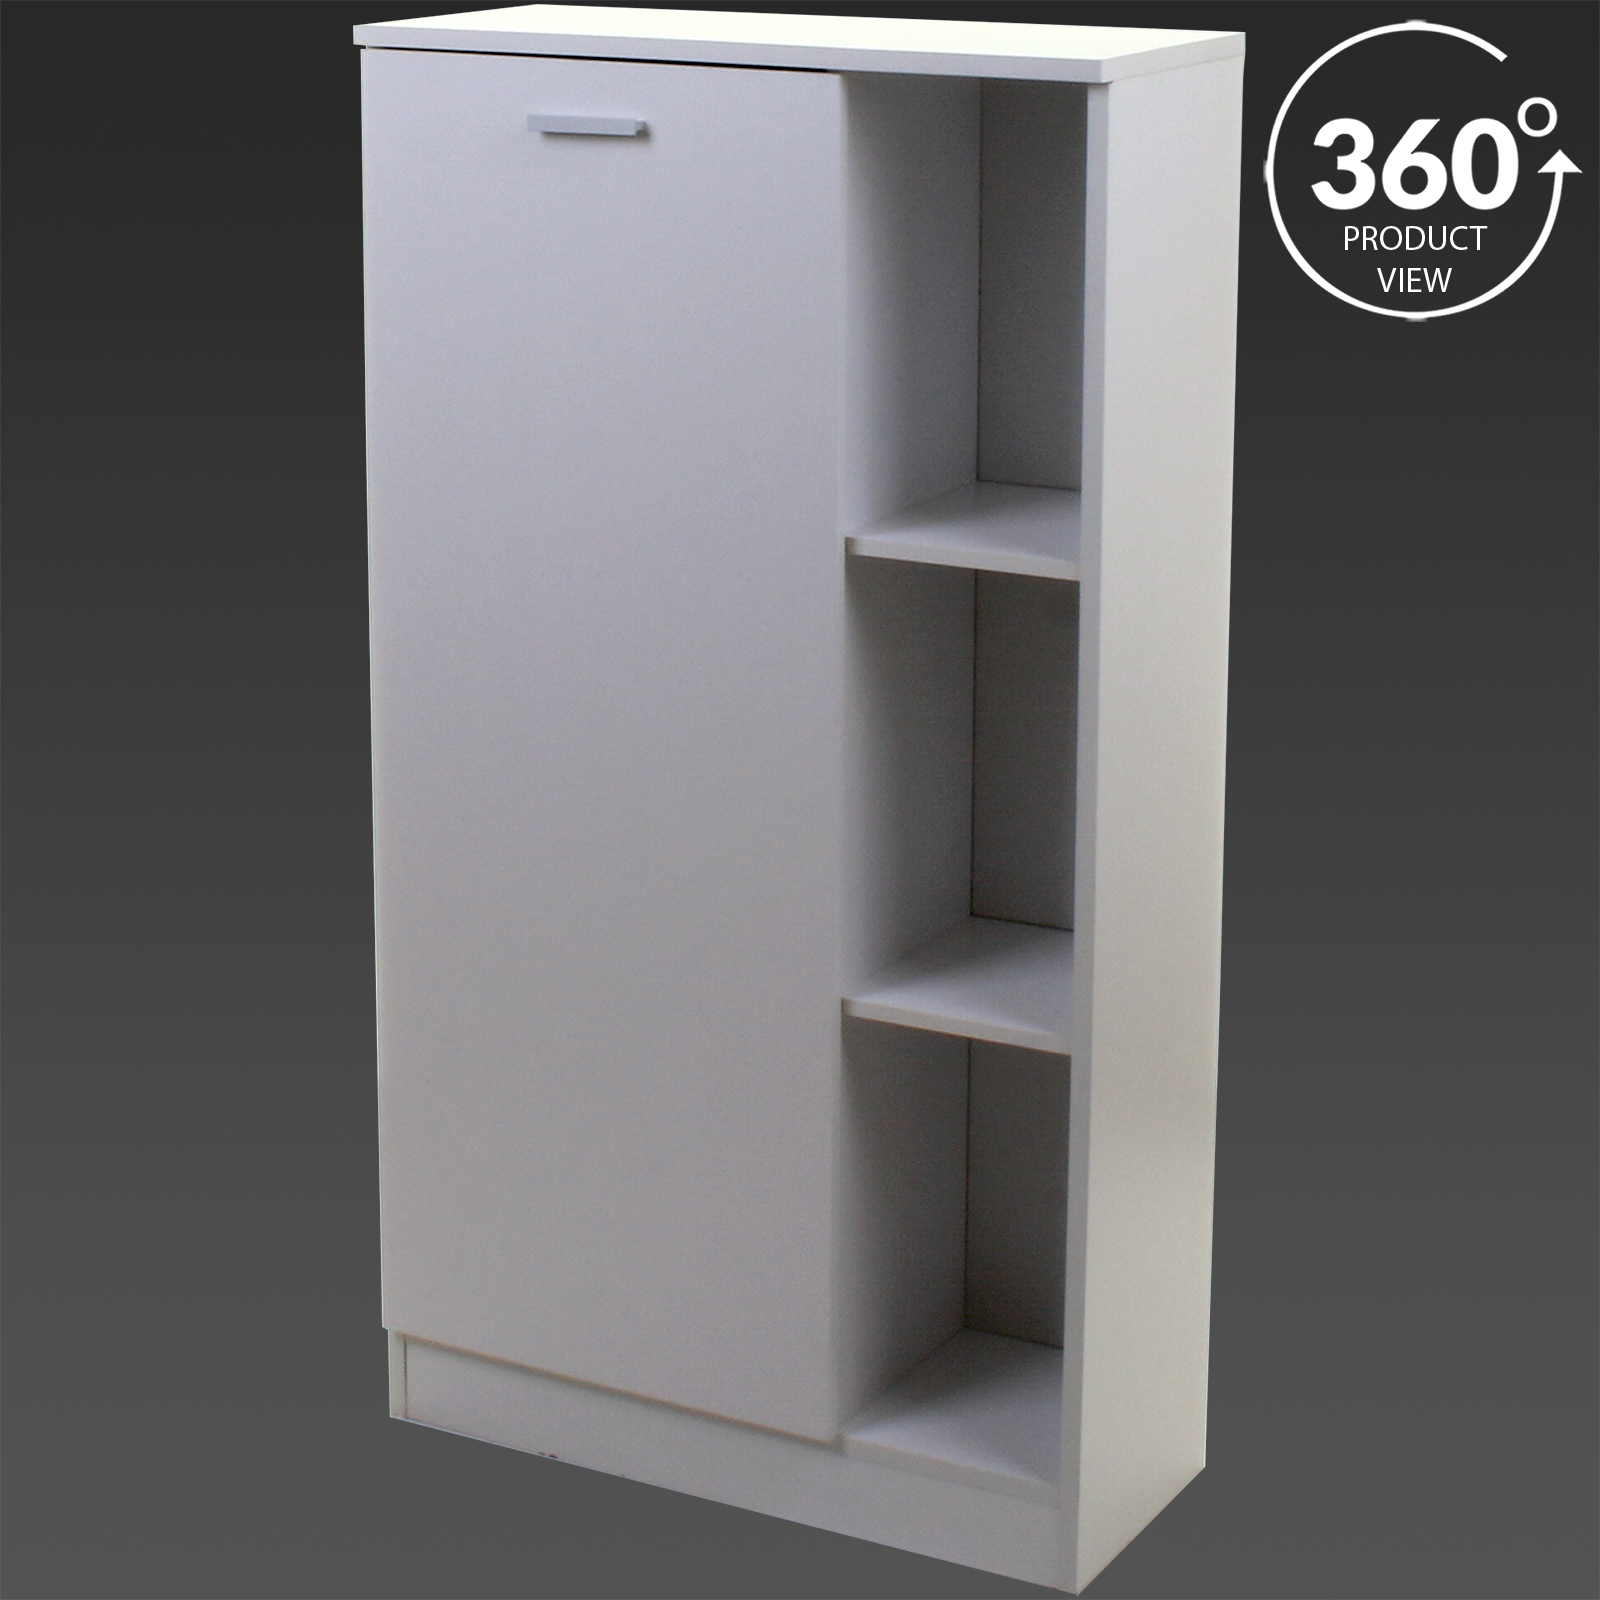 White wooden bathroom cabinet shelving storage unit for Bathroom cabinets 250mm